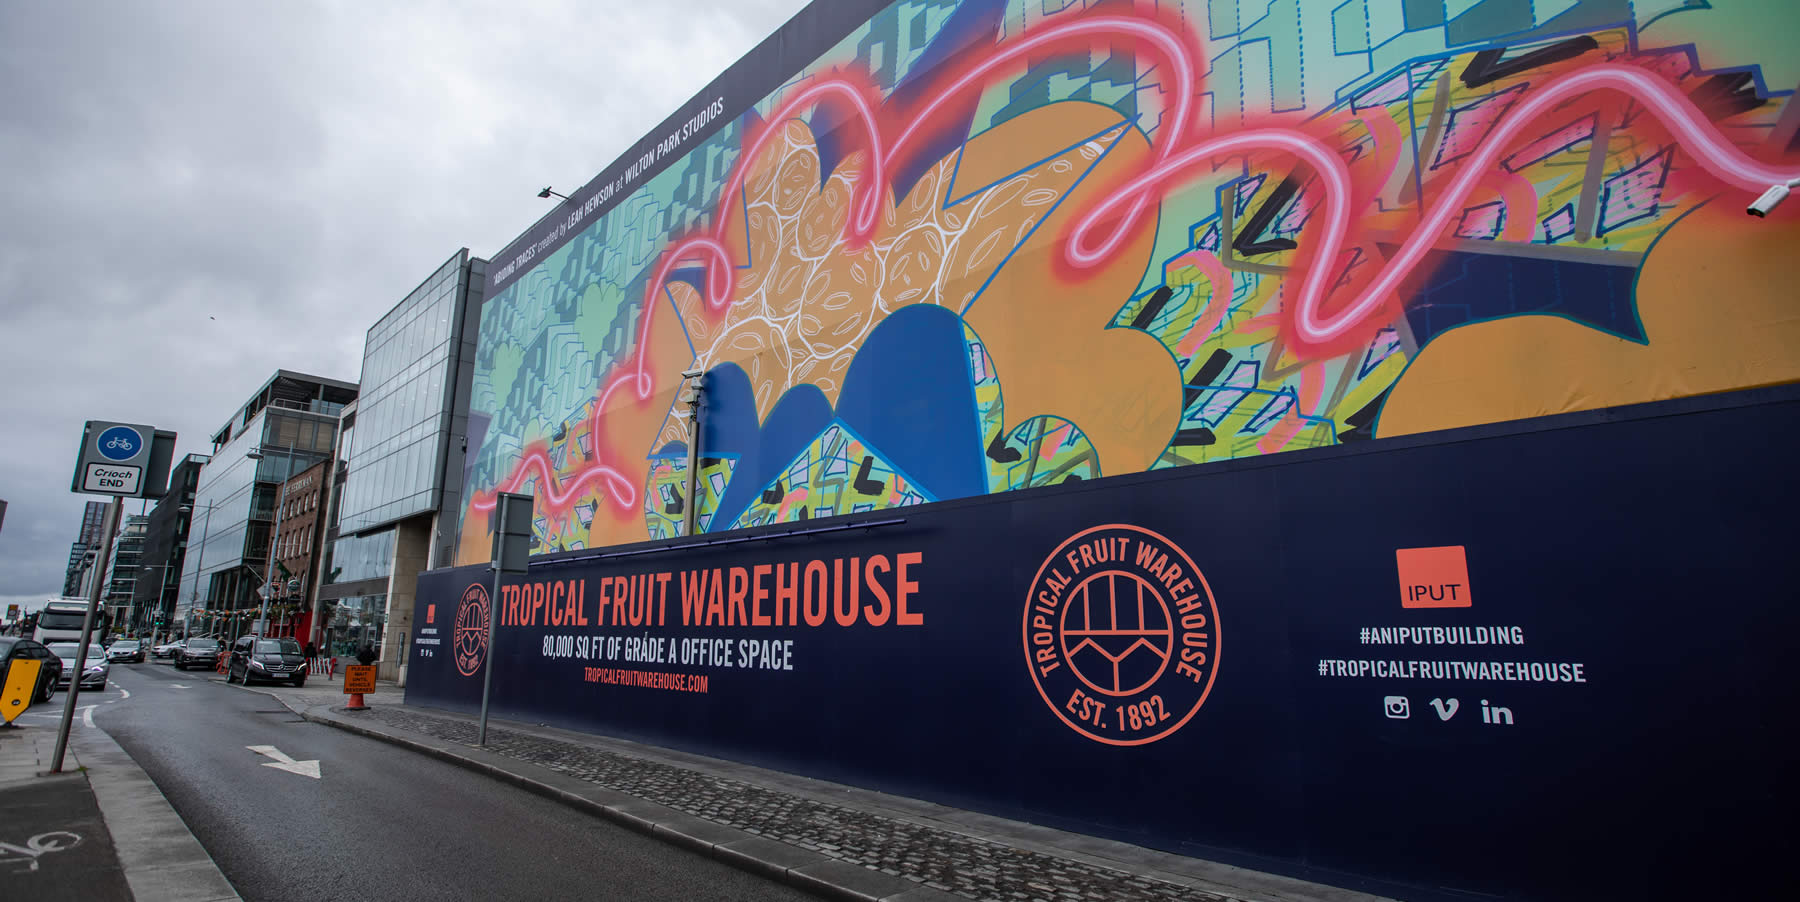 The Tropical Fruit Warehouse Images